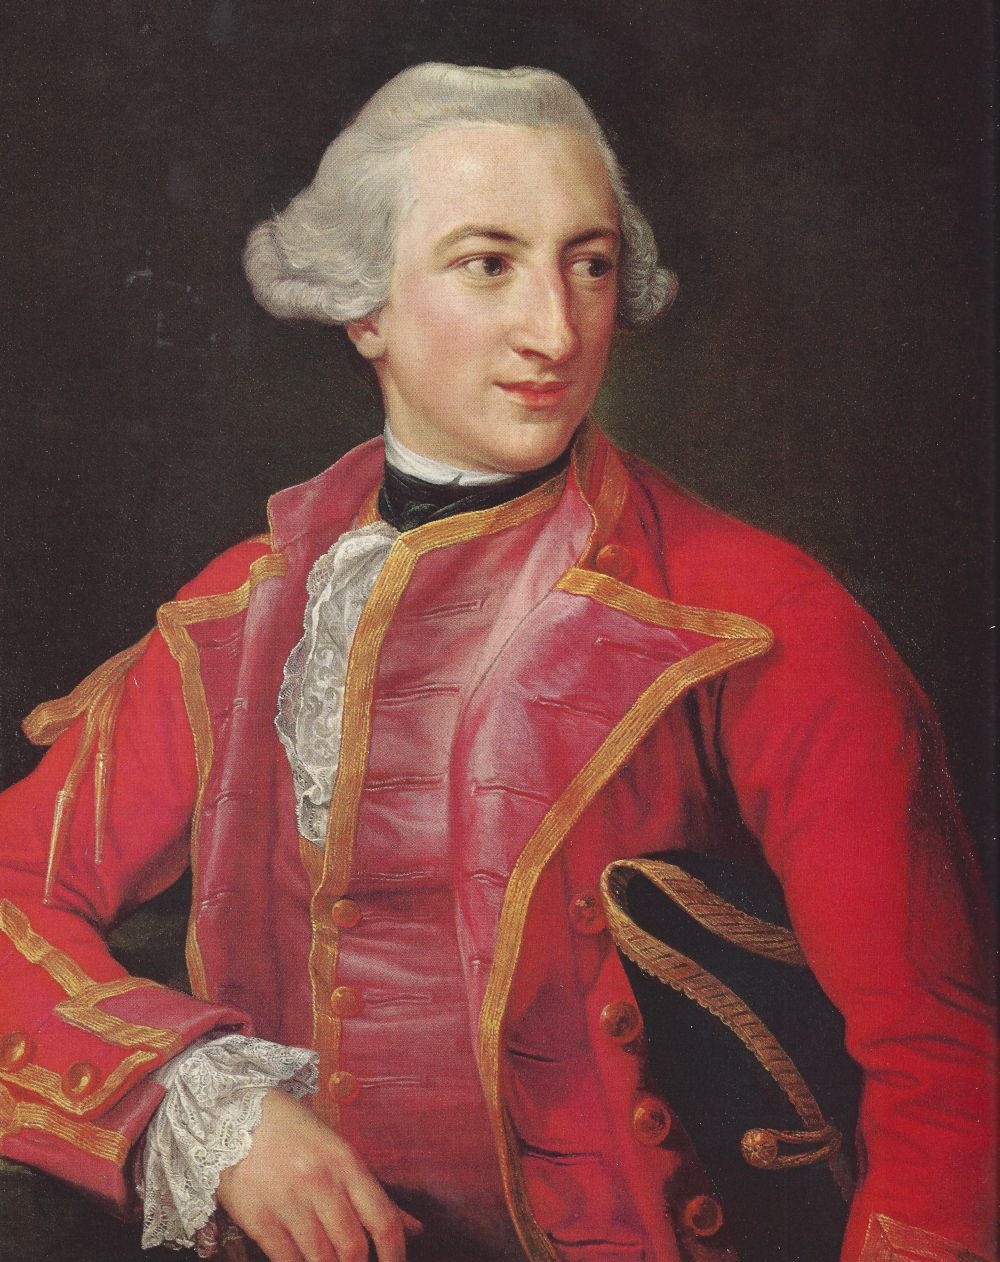 Hugh Percy, joined the British Army as a teenager and rose to the rank of Lieutenant General by the time he joined the forces occupying Boston in 1775.